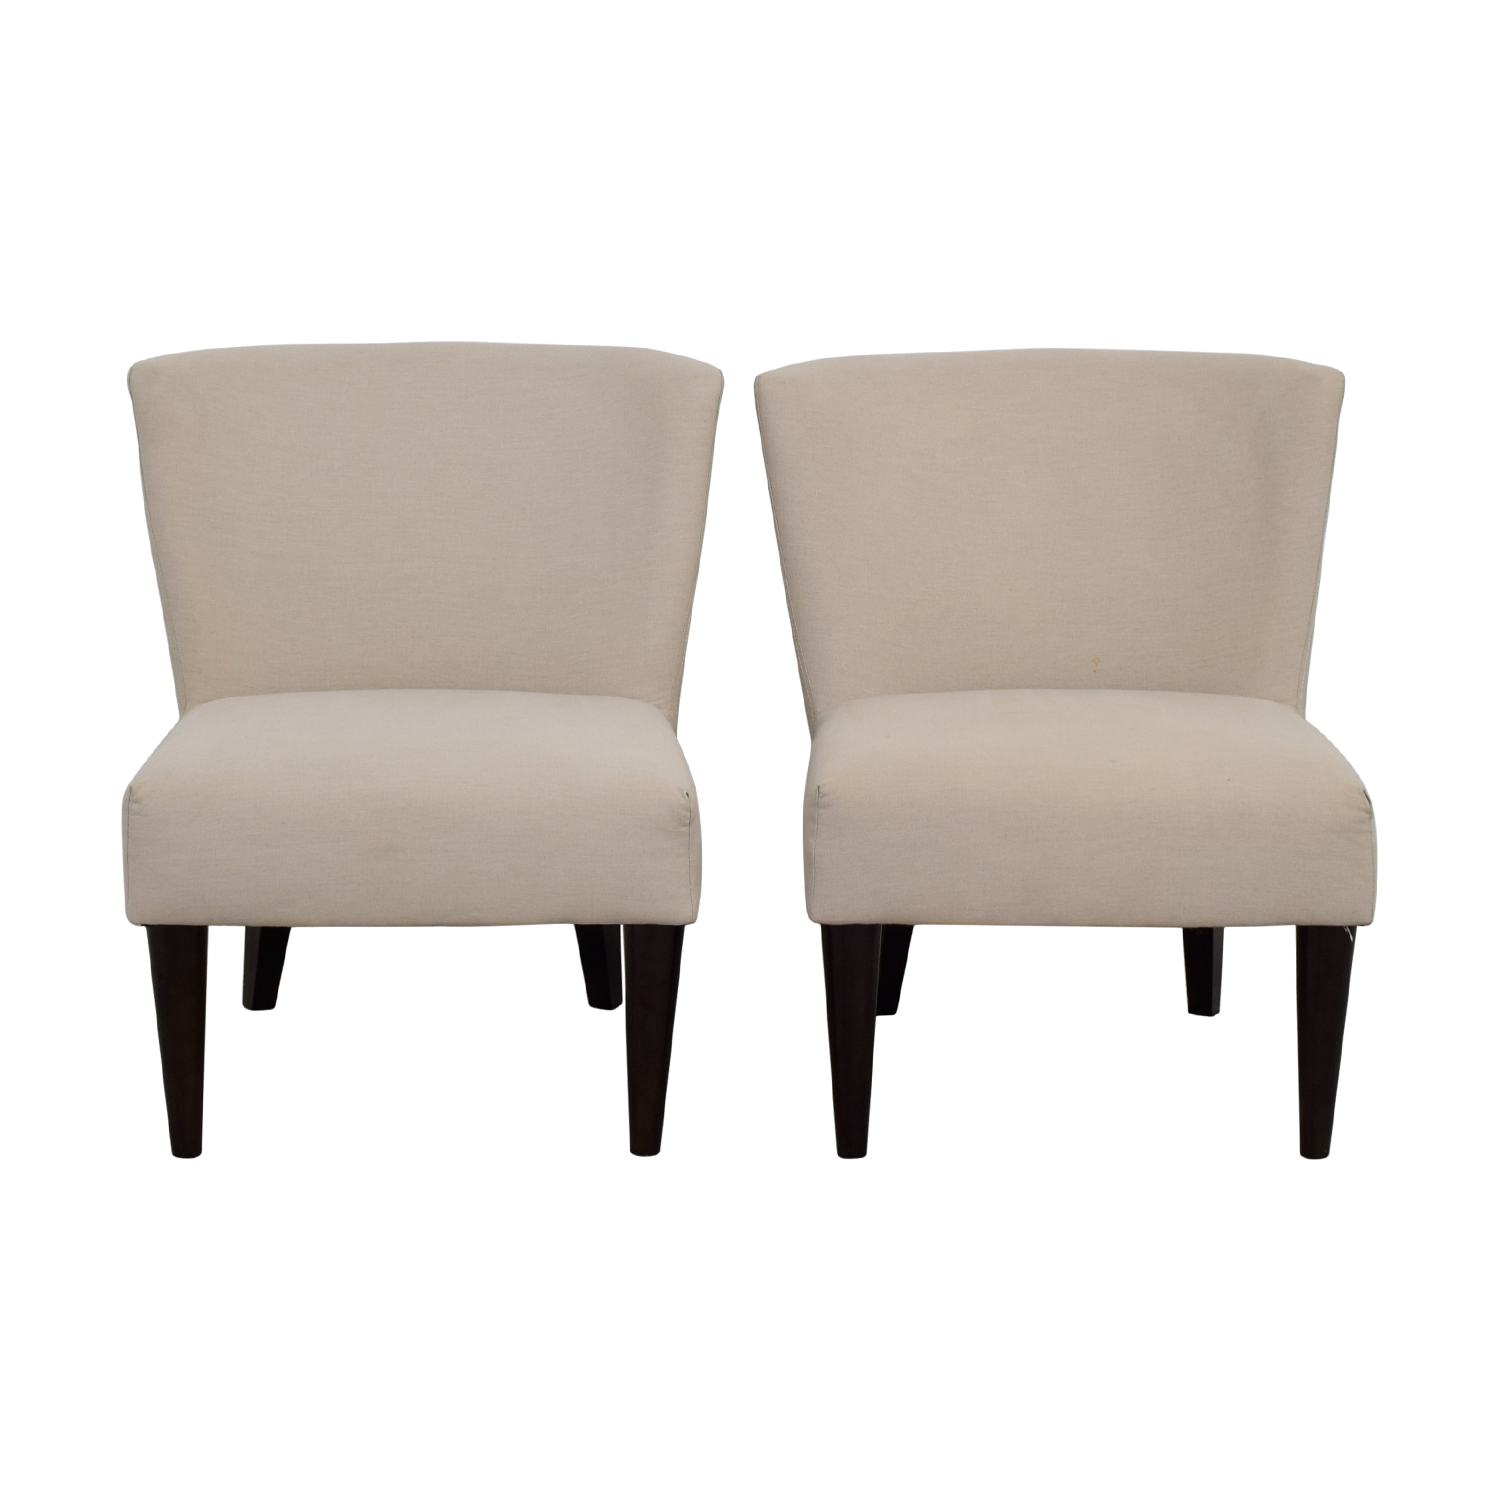 shop West Elm Retro Cream Chairs West Elm Dining Chairs